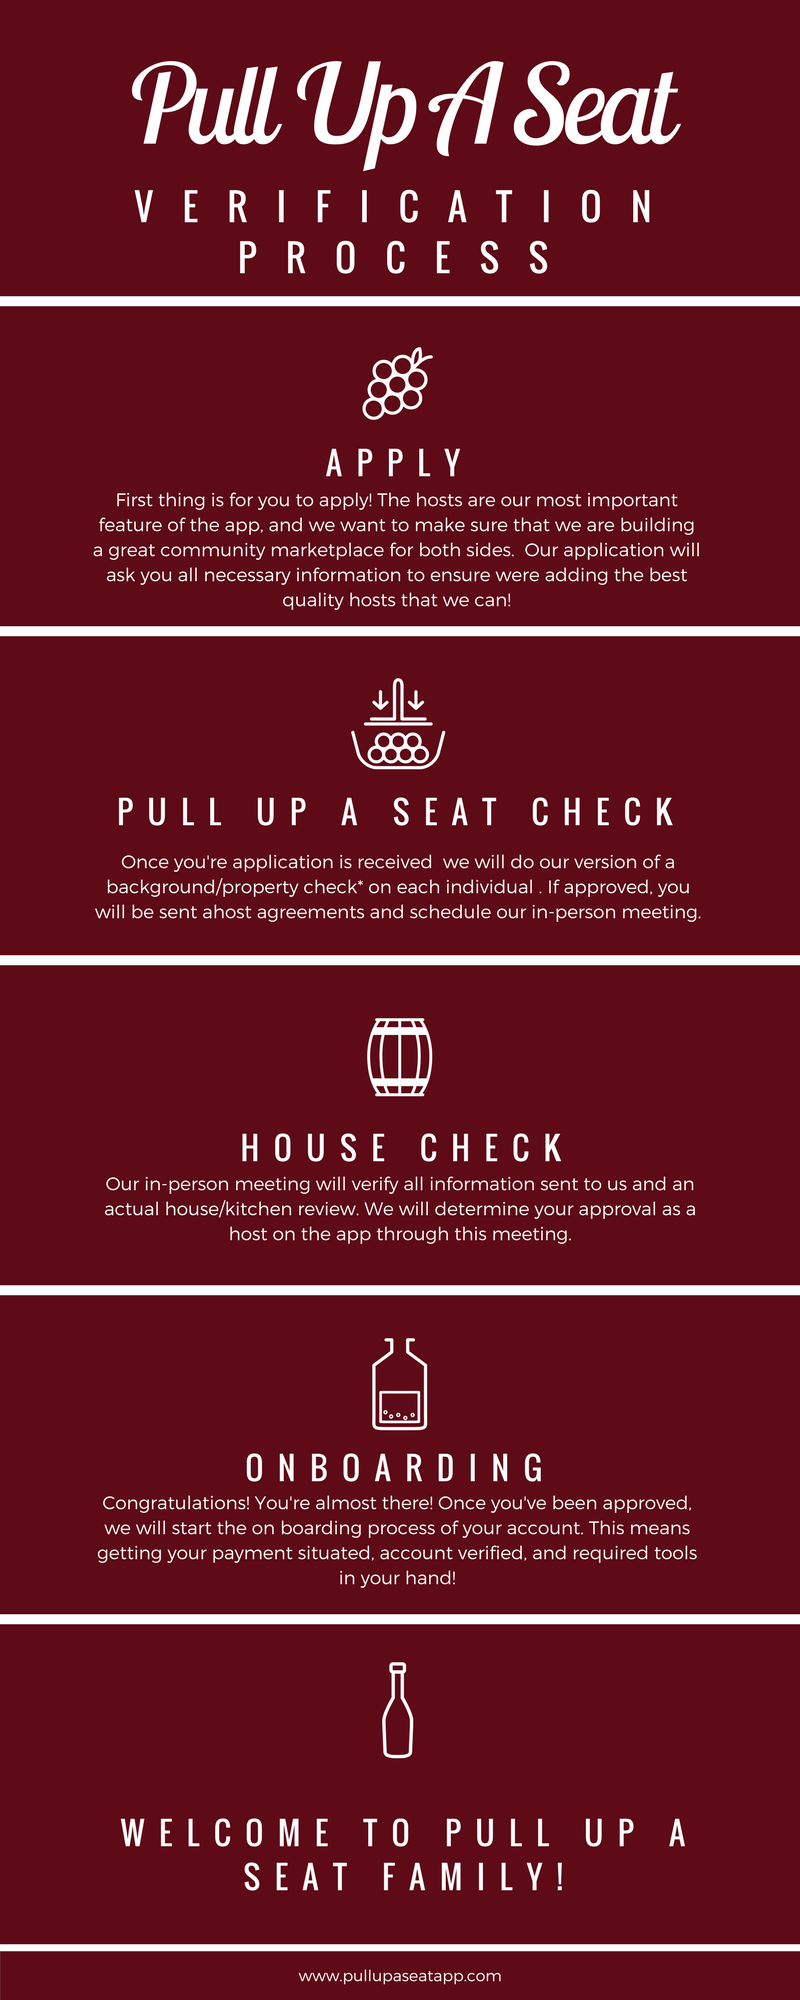 What's The Verification Process Like? - We want to share with you the process to becoming a host for PULL UP A SEAT. This chart allows you to see the inner workings of the steps involved into becoming a host for PULL UP A SEAT.